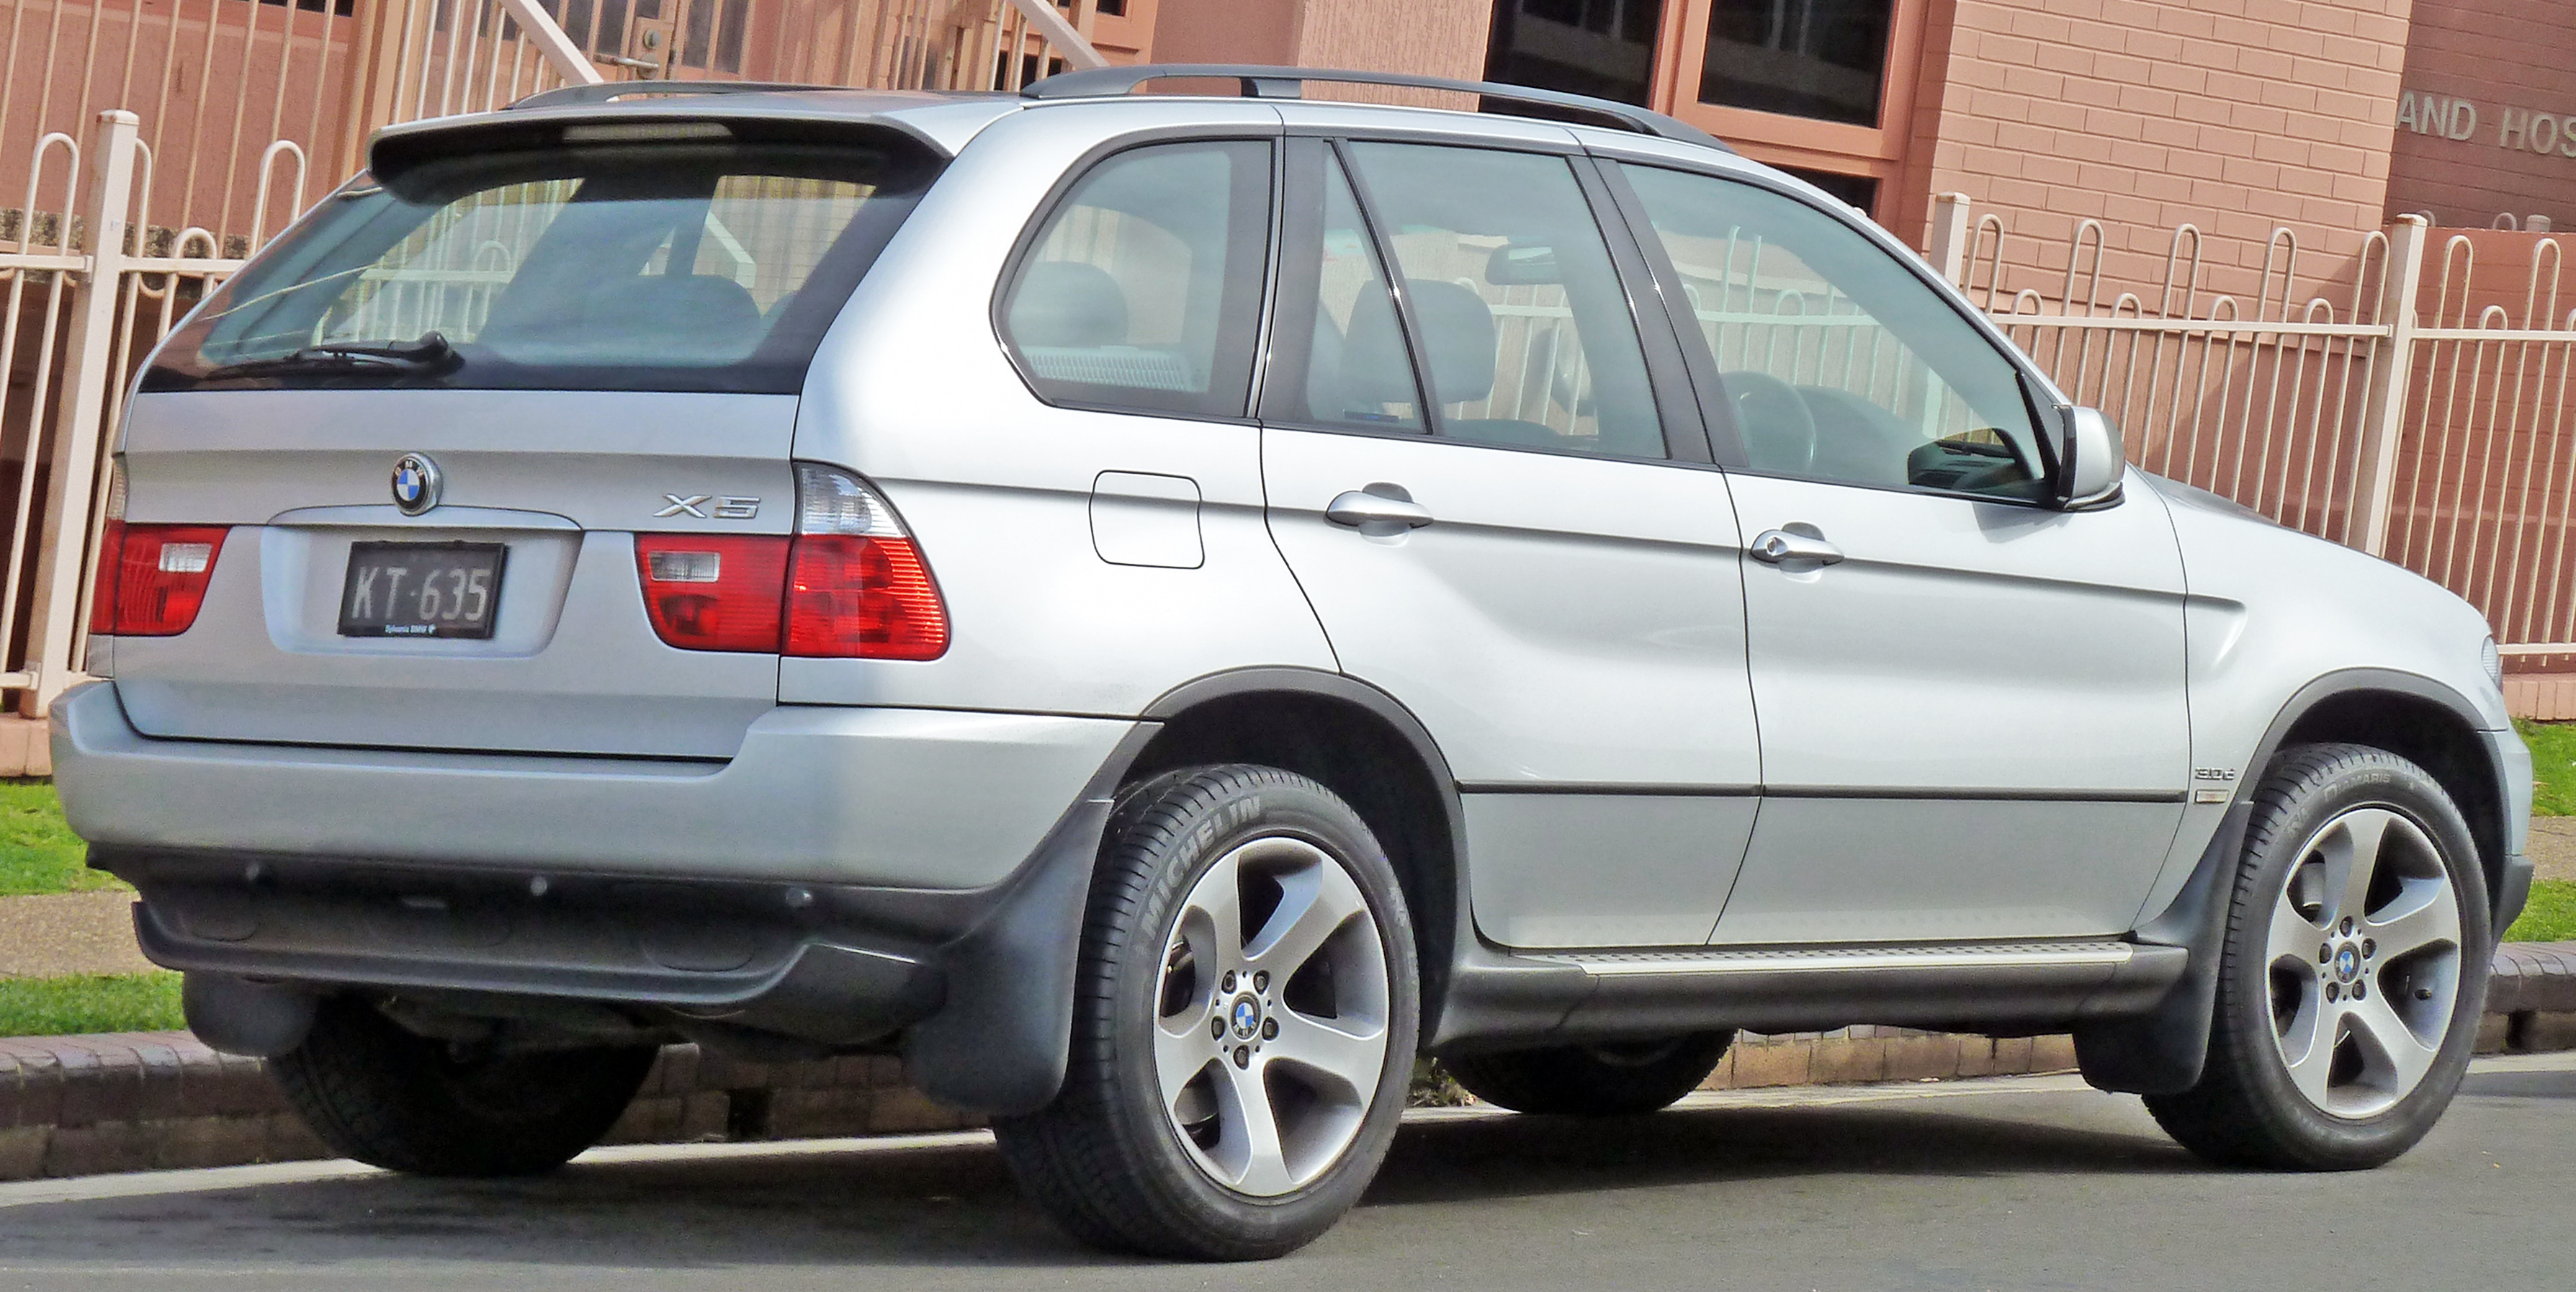 2006 BMW X5 Information and photos ZombieDrive